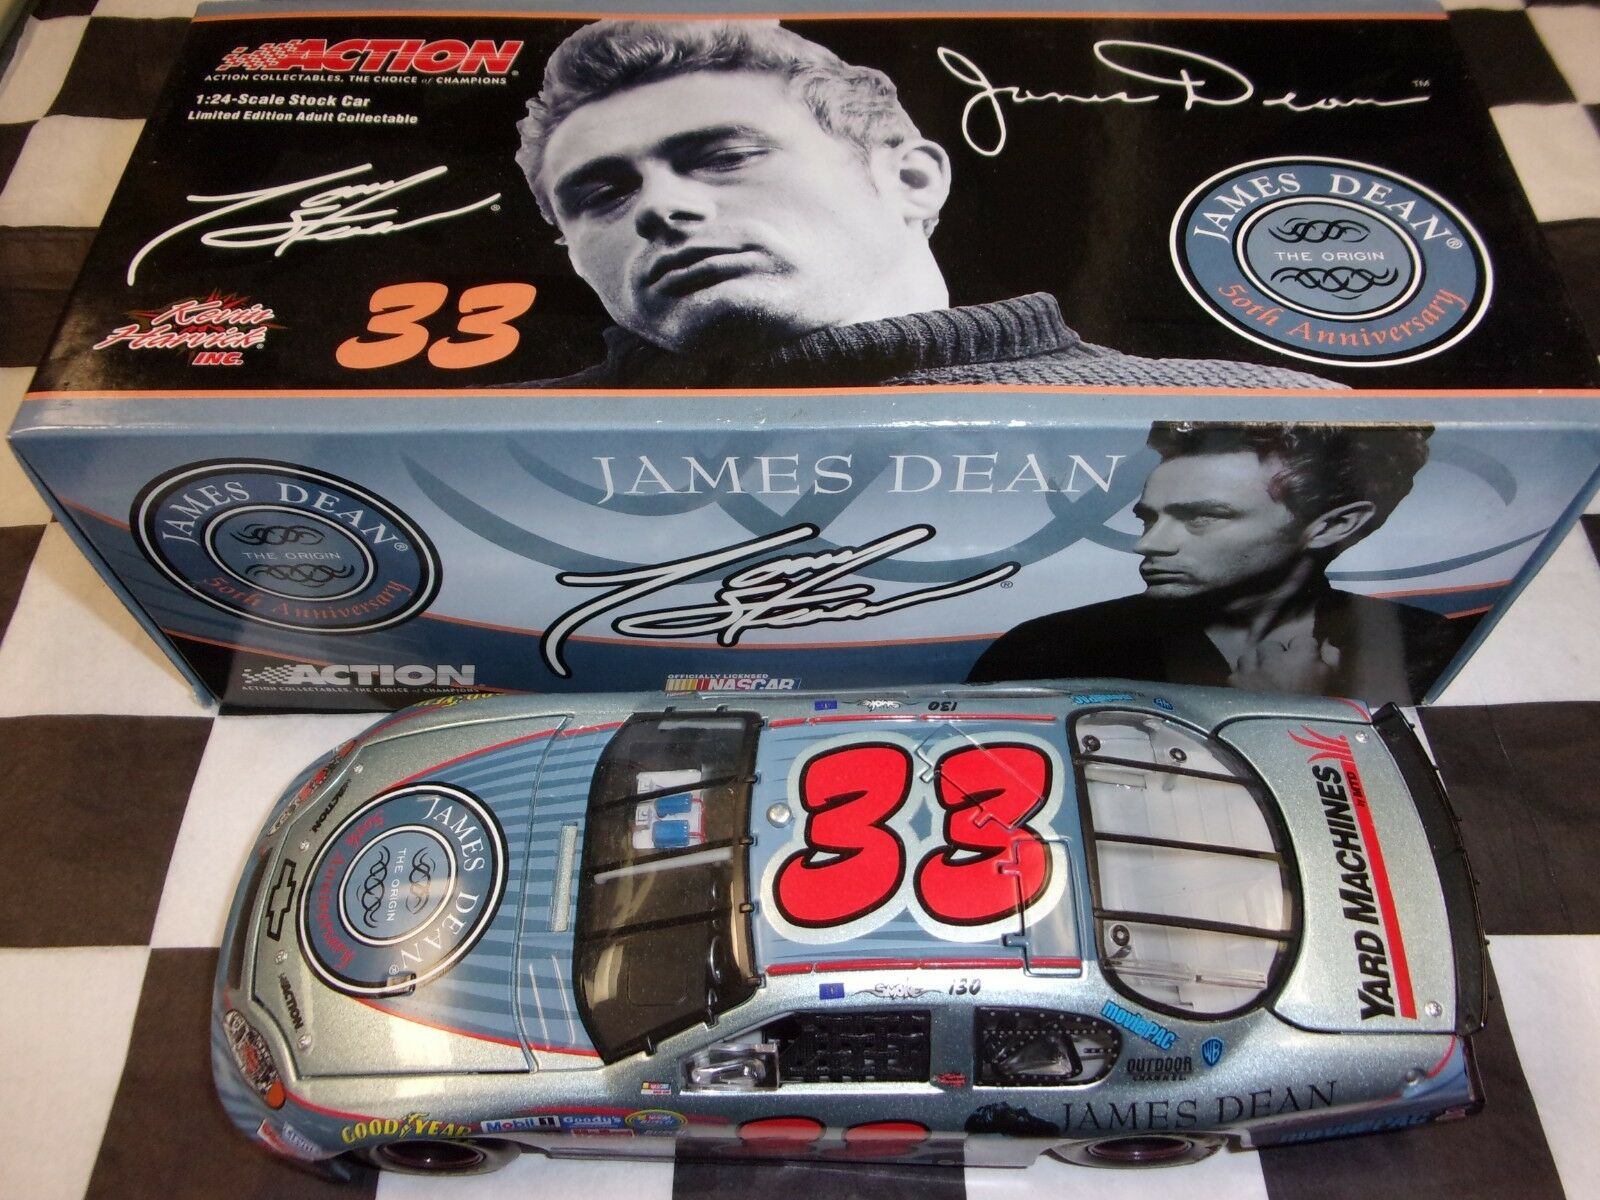 Tony Stewart James Dean 50th 2005 Monte Carlo NASCAR Action 1 24 scale car